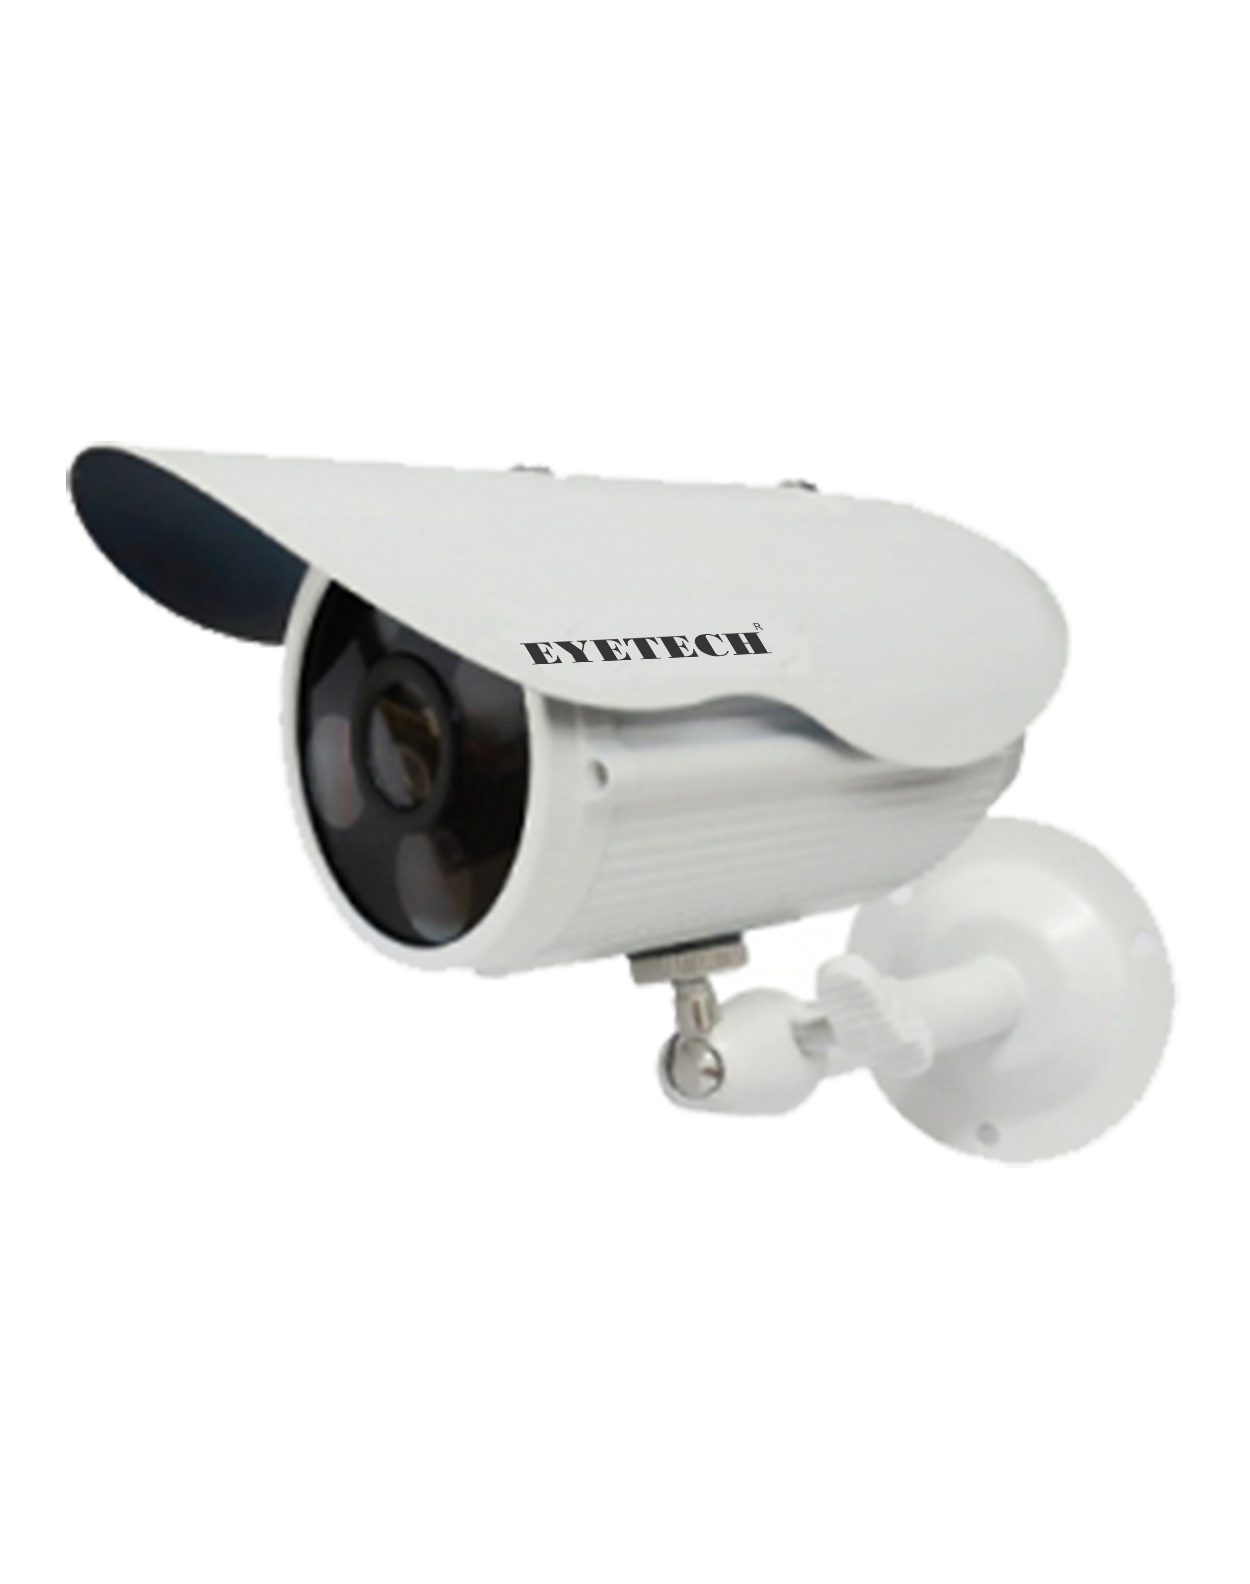 CAMERA EYETECH HD-TVI ET-326TVI